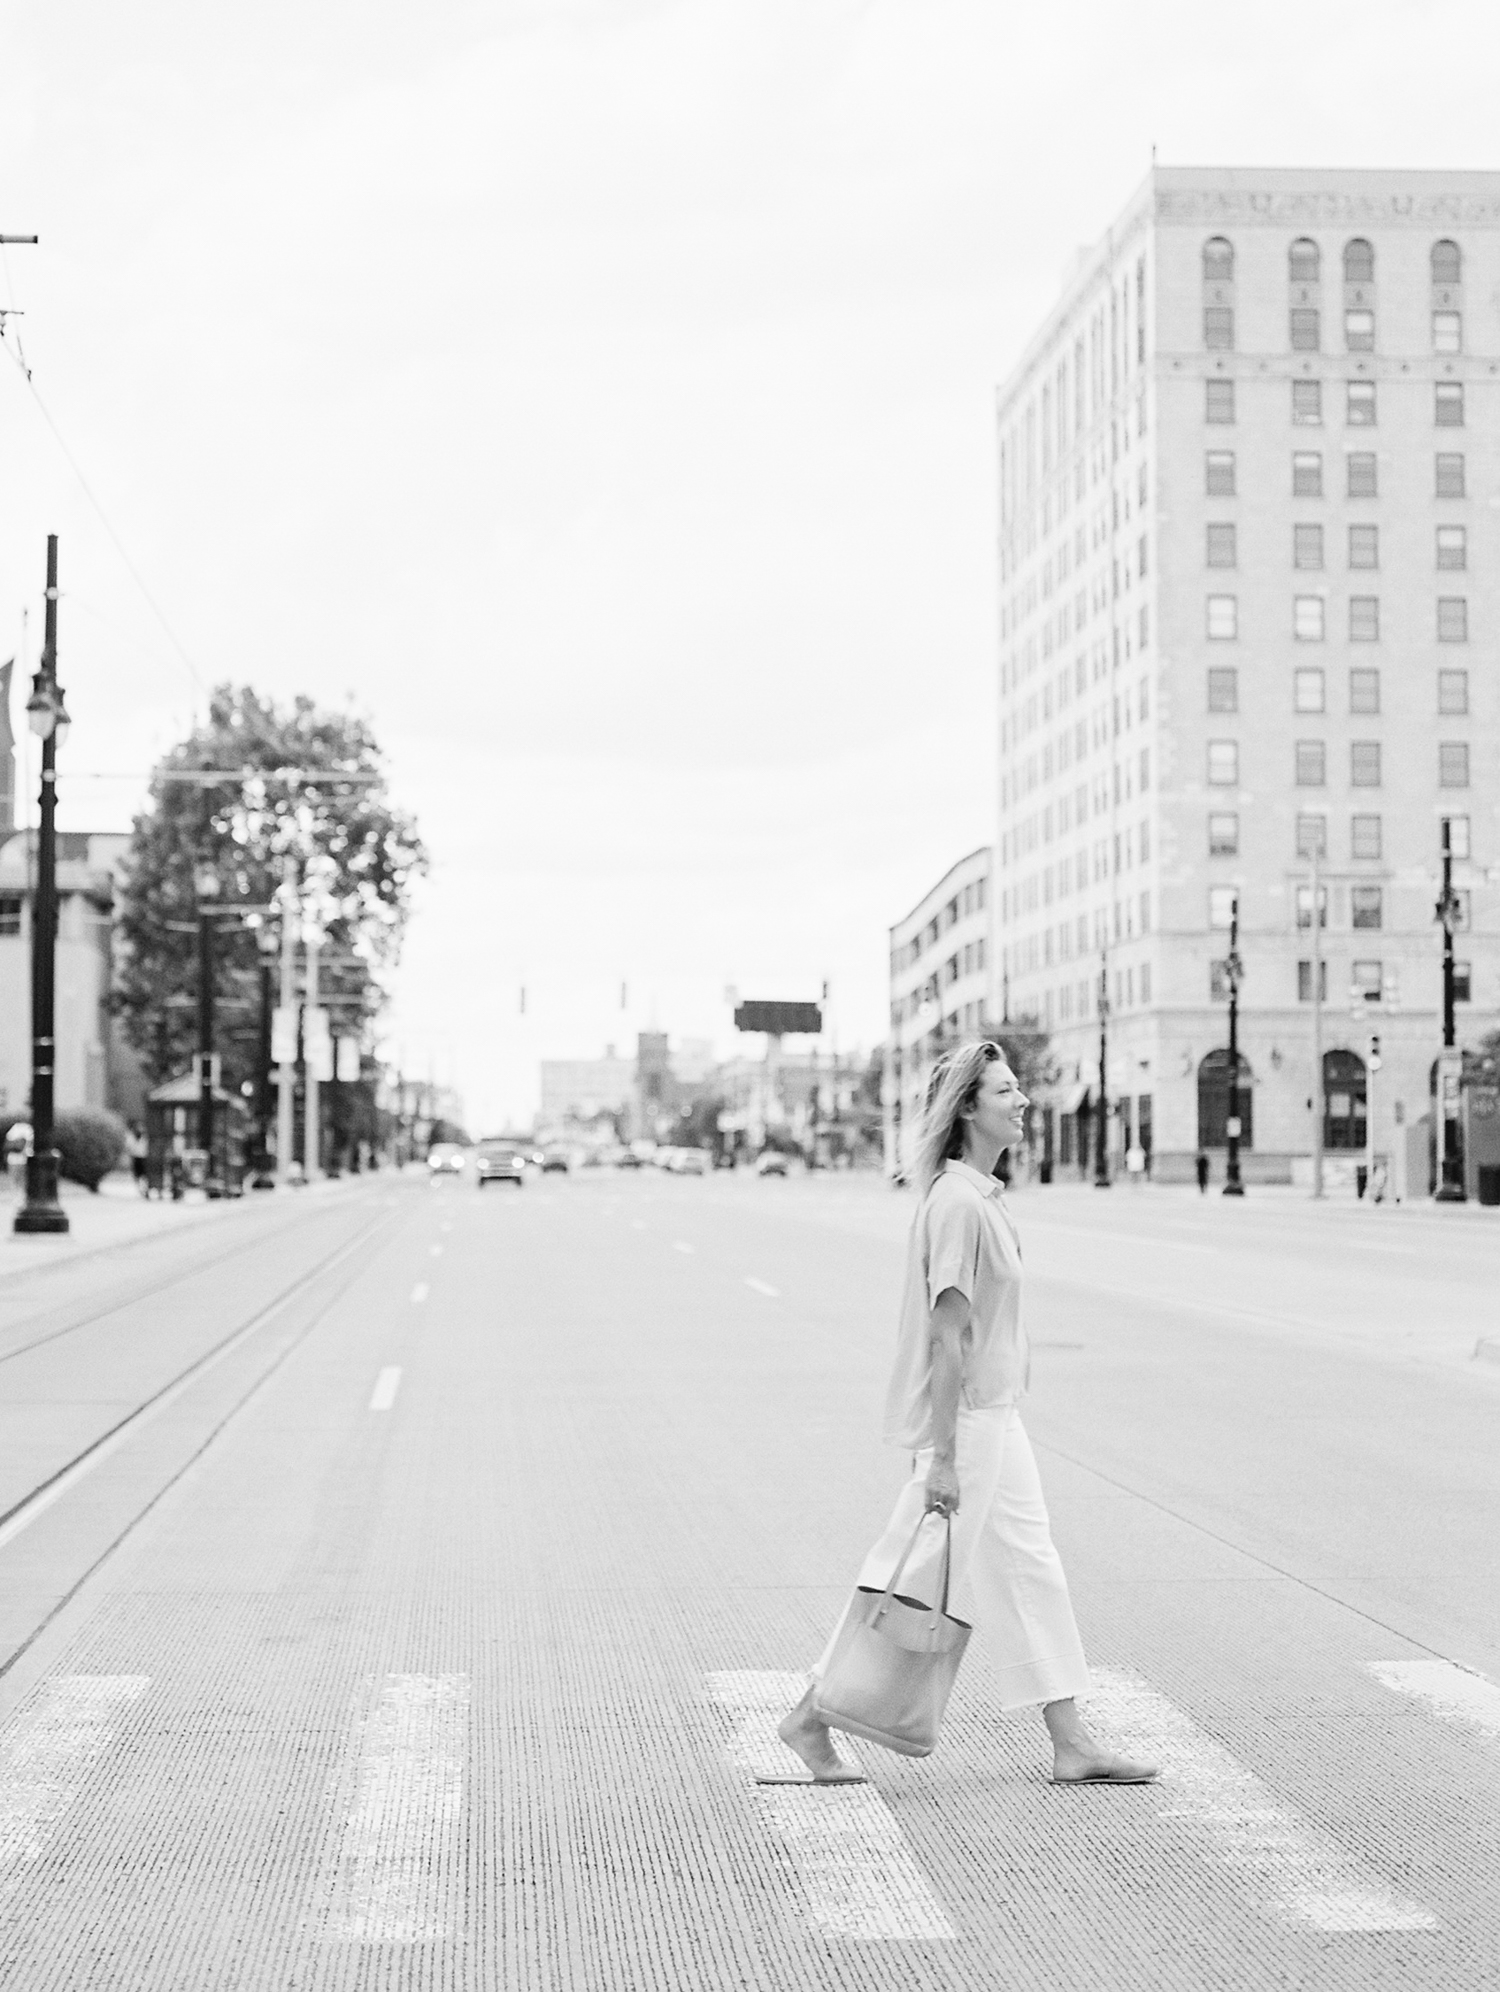 A creative woman business owner walks across Woodward ave near the DIA in Detroit, Michigan